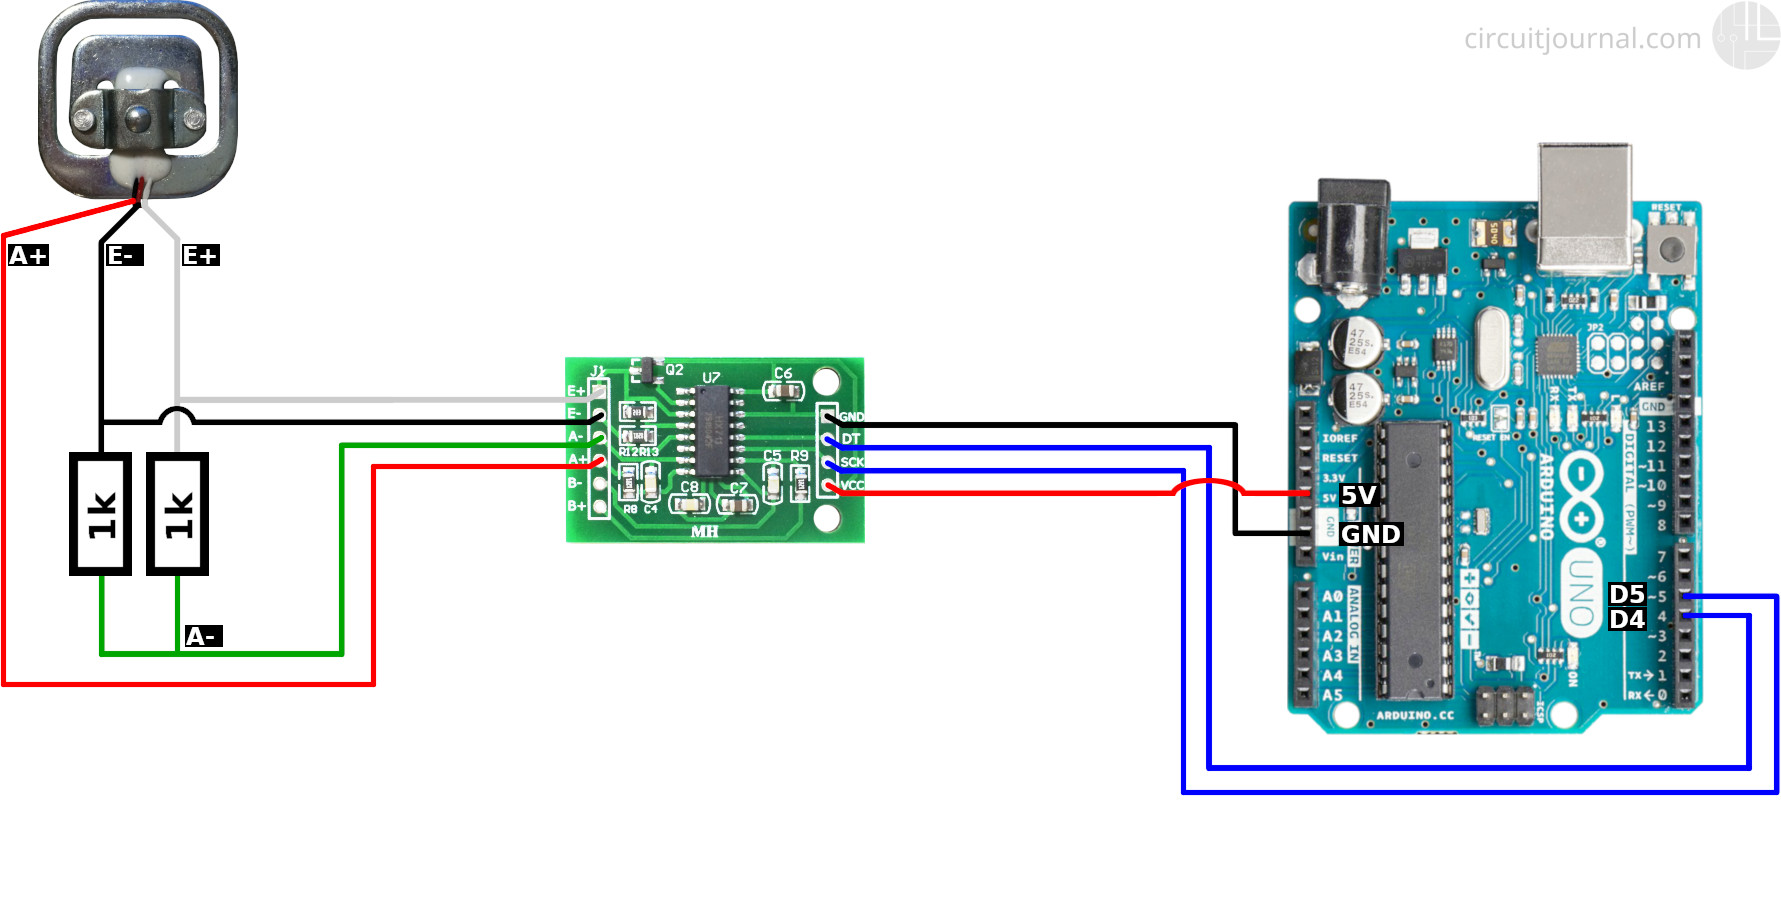 Connecting a single bathroom scale load cell module to Arduino with the HX711 module